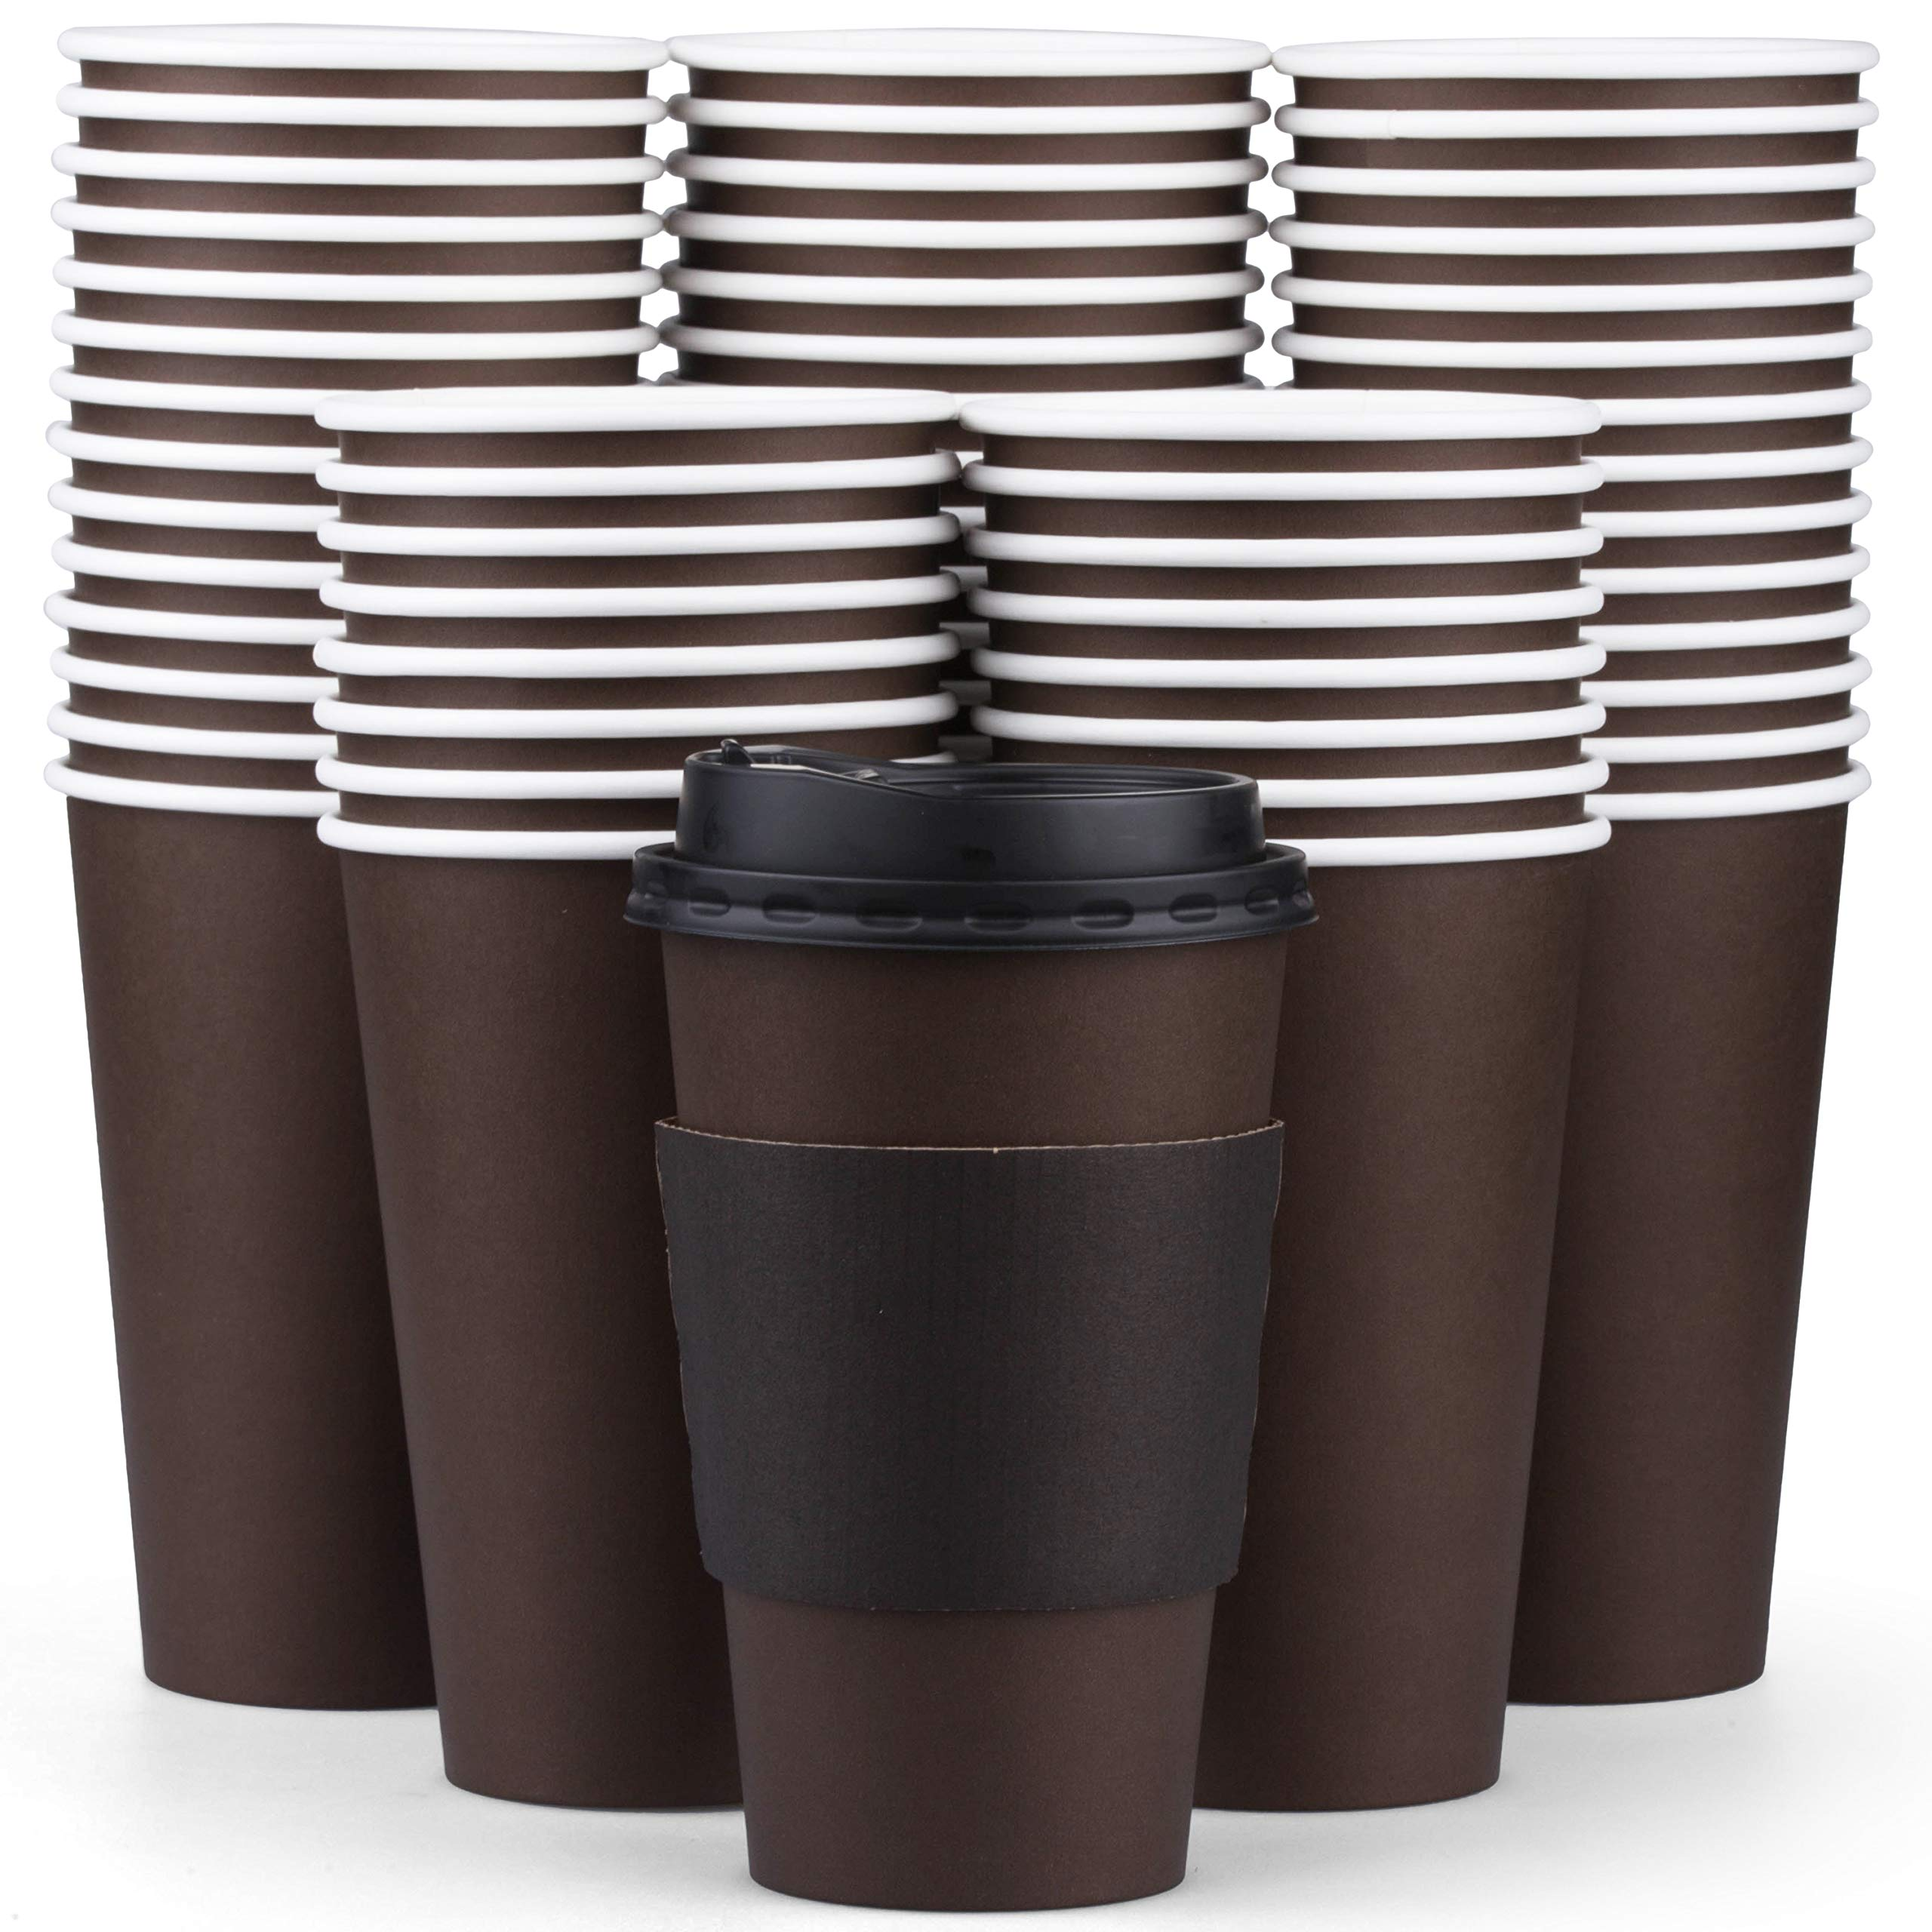 100 Pack Disposable Coffee Cups with tight Lids - Superior Quality 16 Oz Paper Hot Coffee Cups with Sleeves for comfortable Cup holding and Lids to prevent leaks by Promora